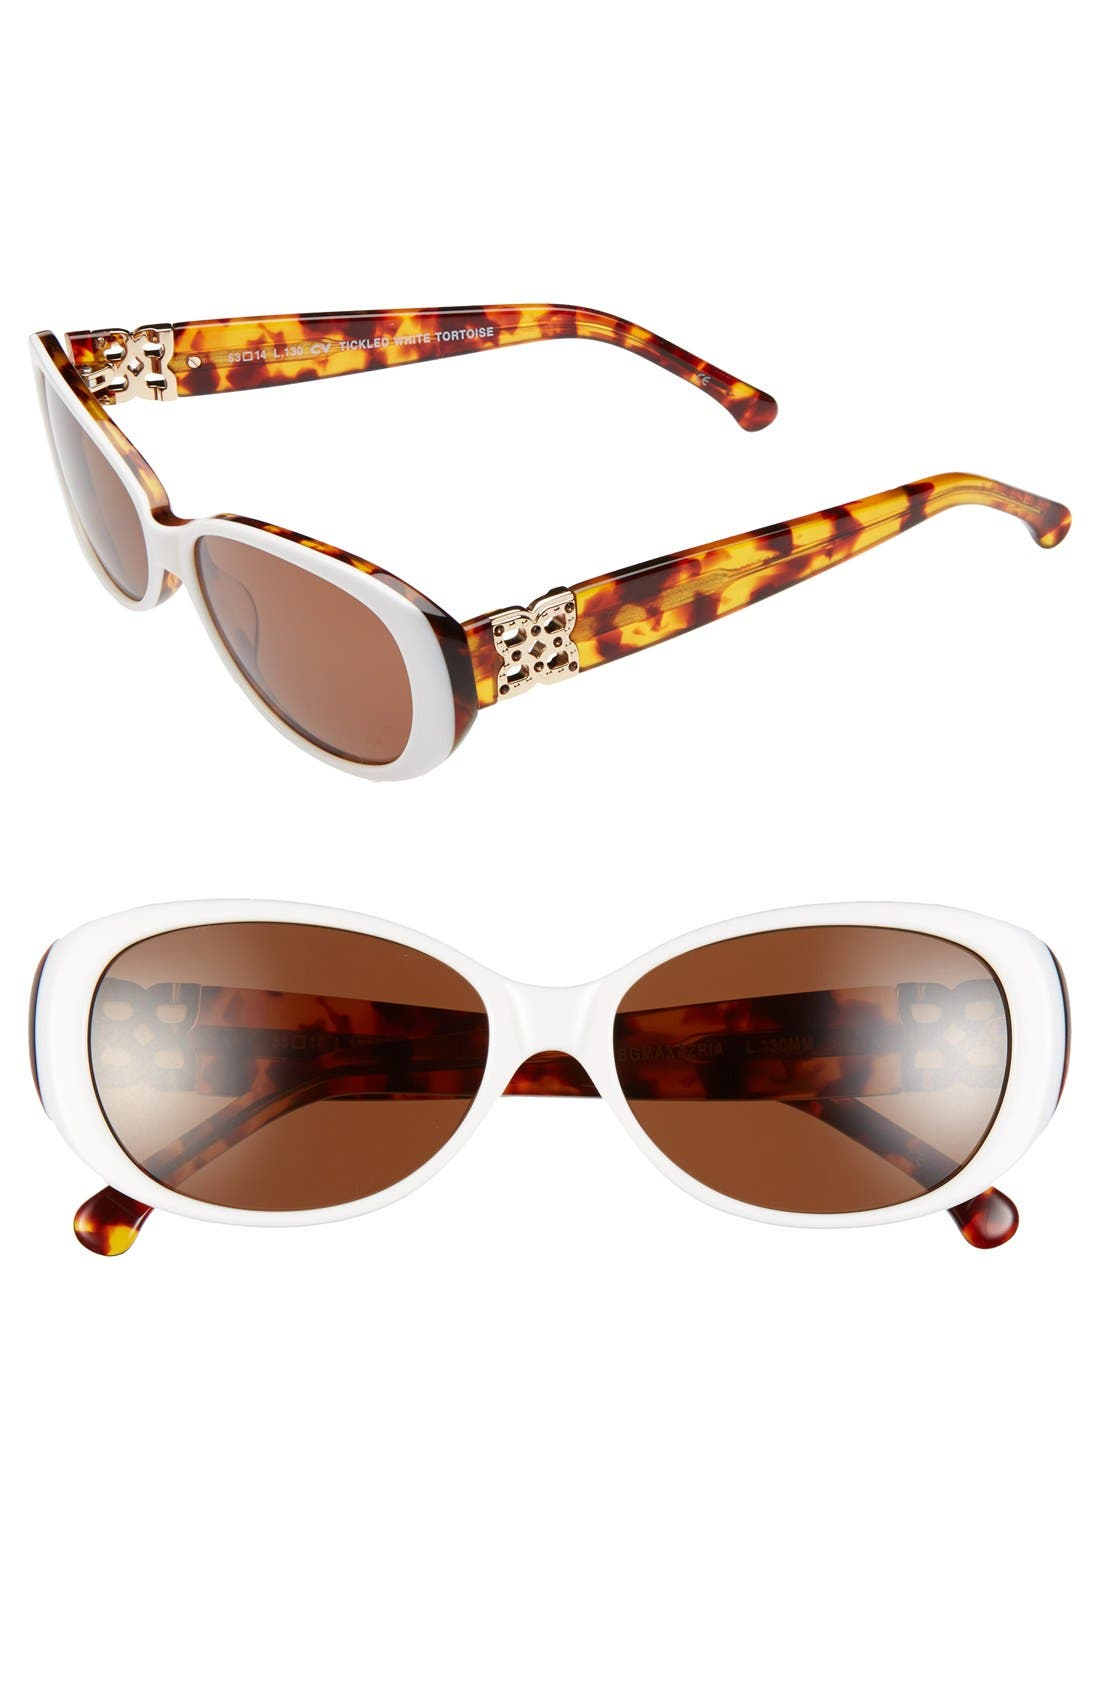 Main Image - BCBGMAXAZRIA 'Tickled' 53mm Sunglasses